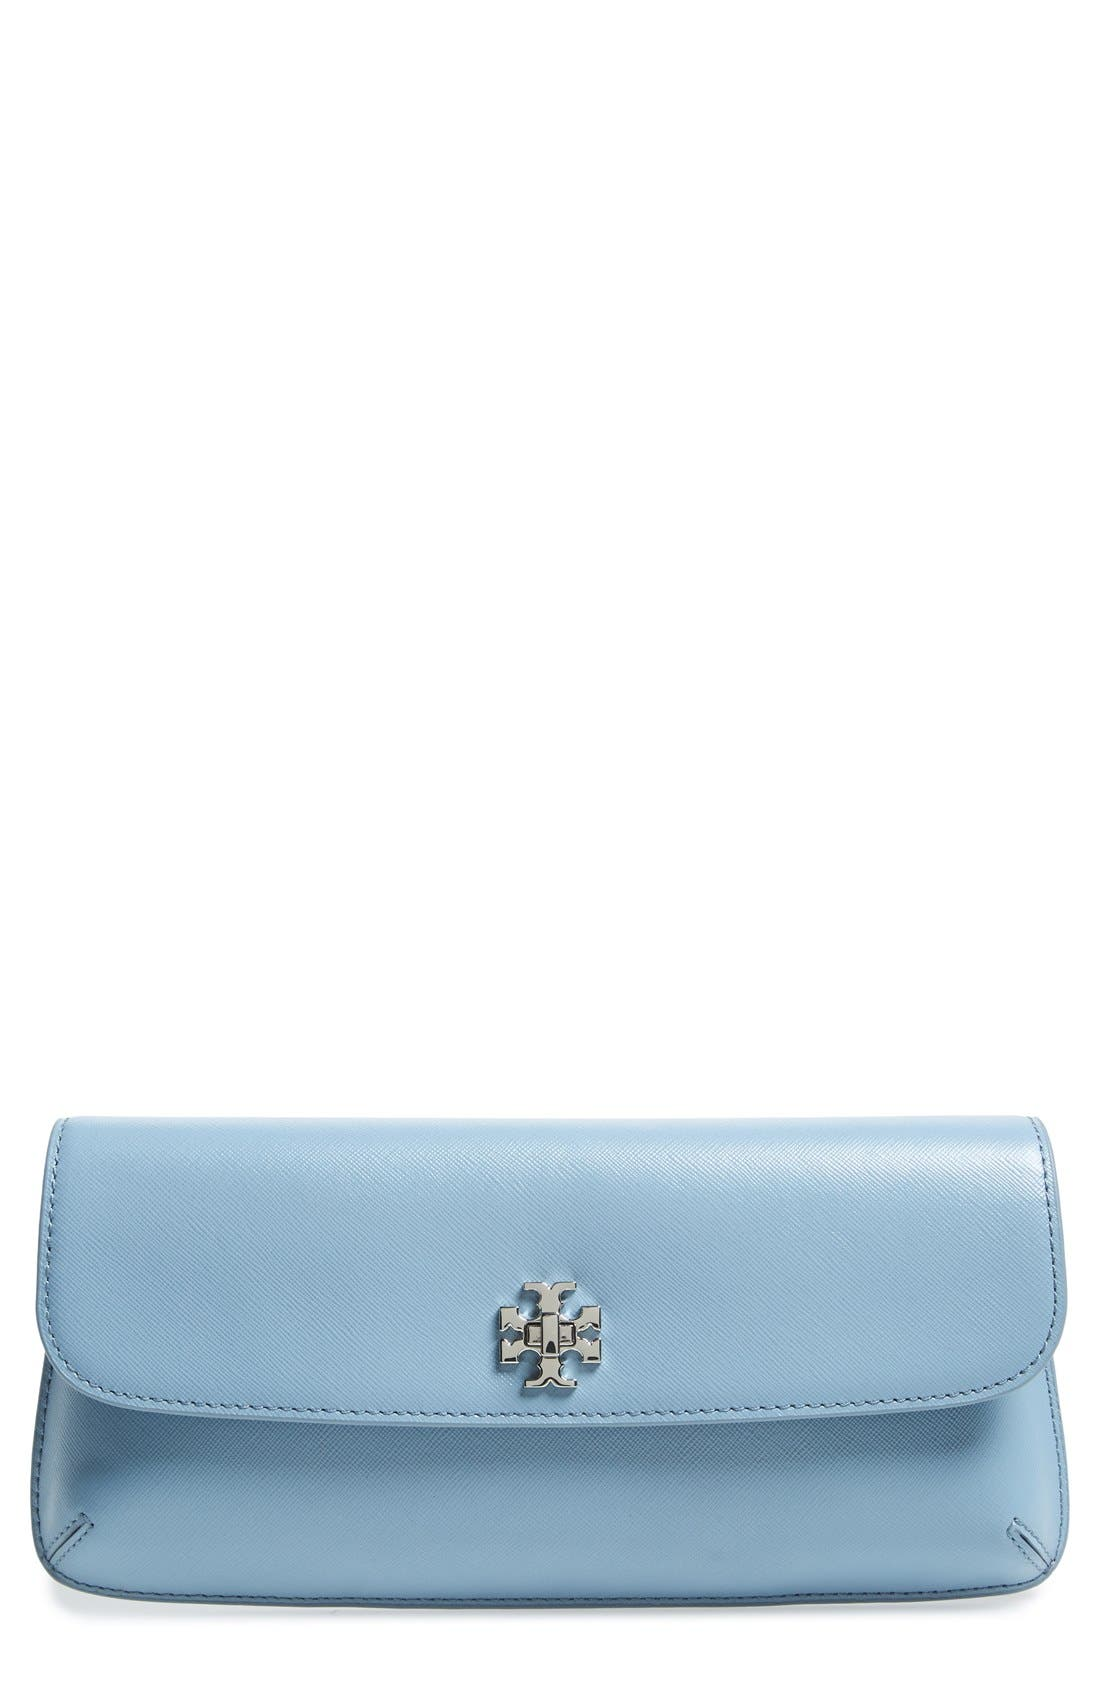 Alternate Image 1 Selected - Tory Burch 'Slim Diana' Saffiano Leather Flap Clutch